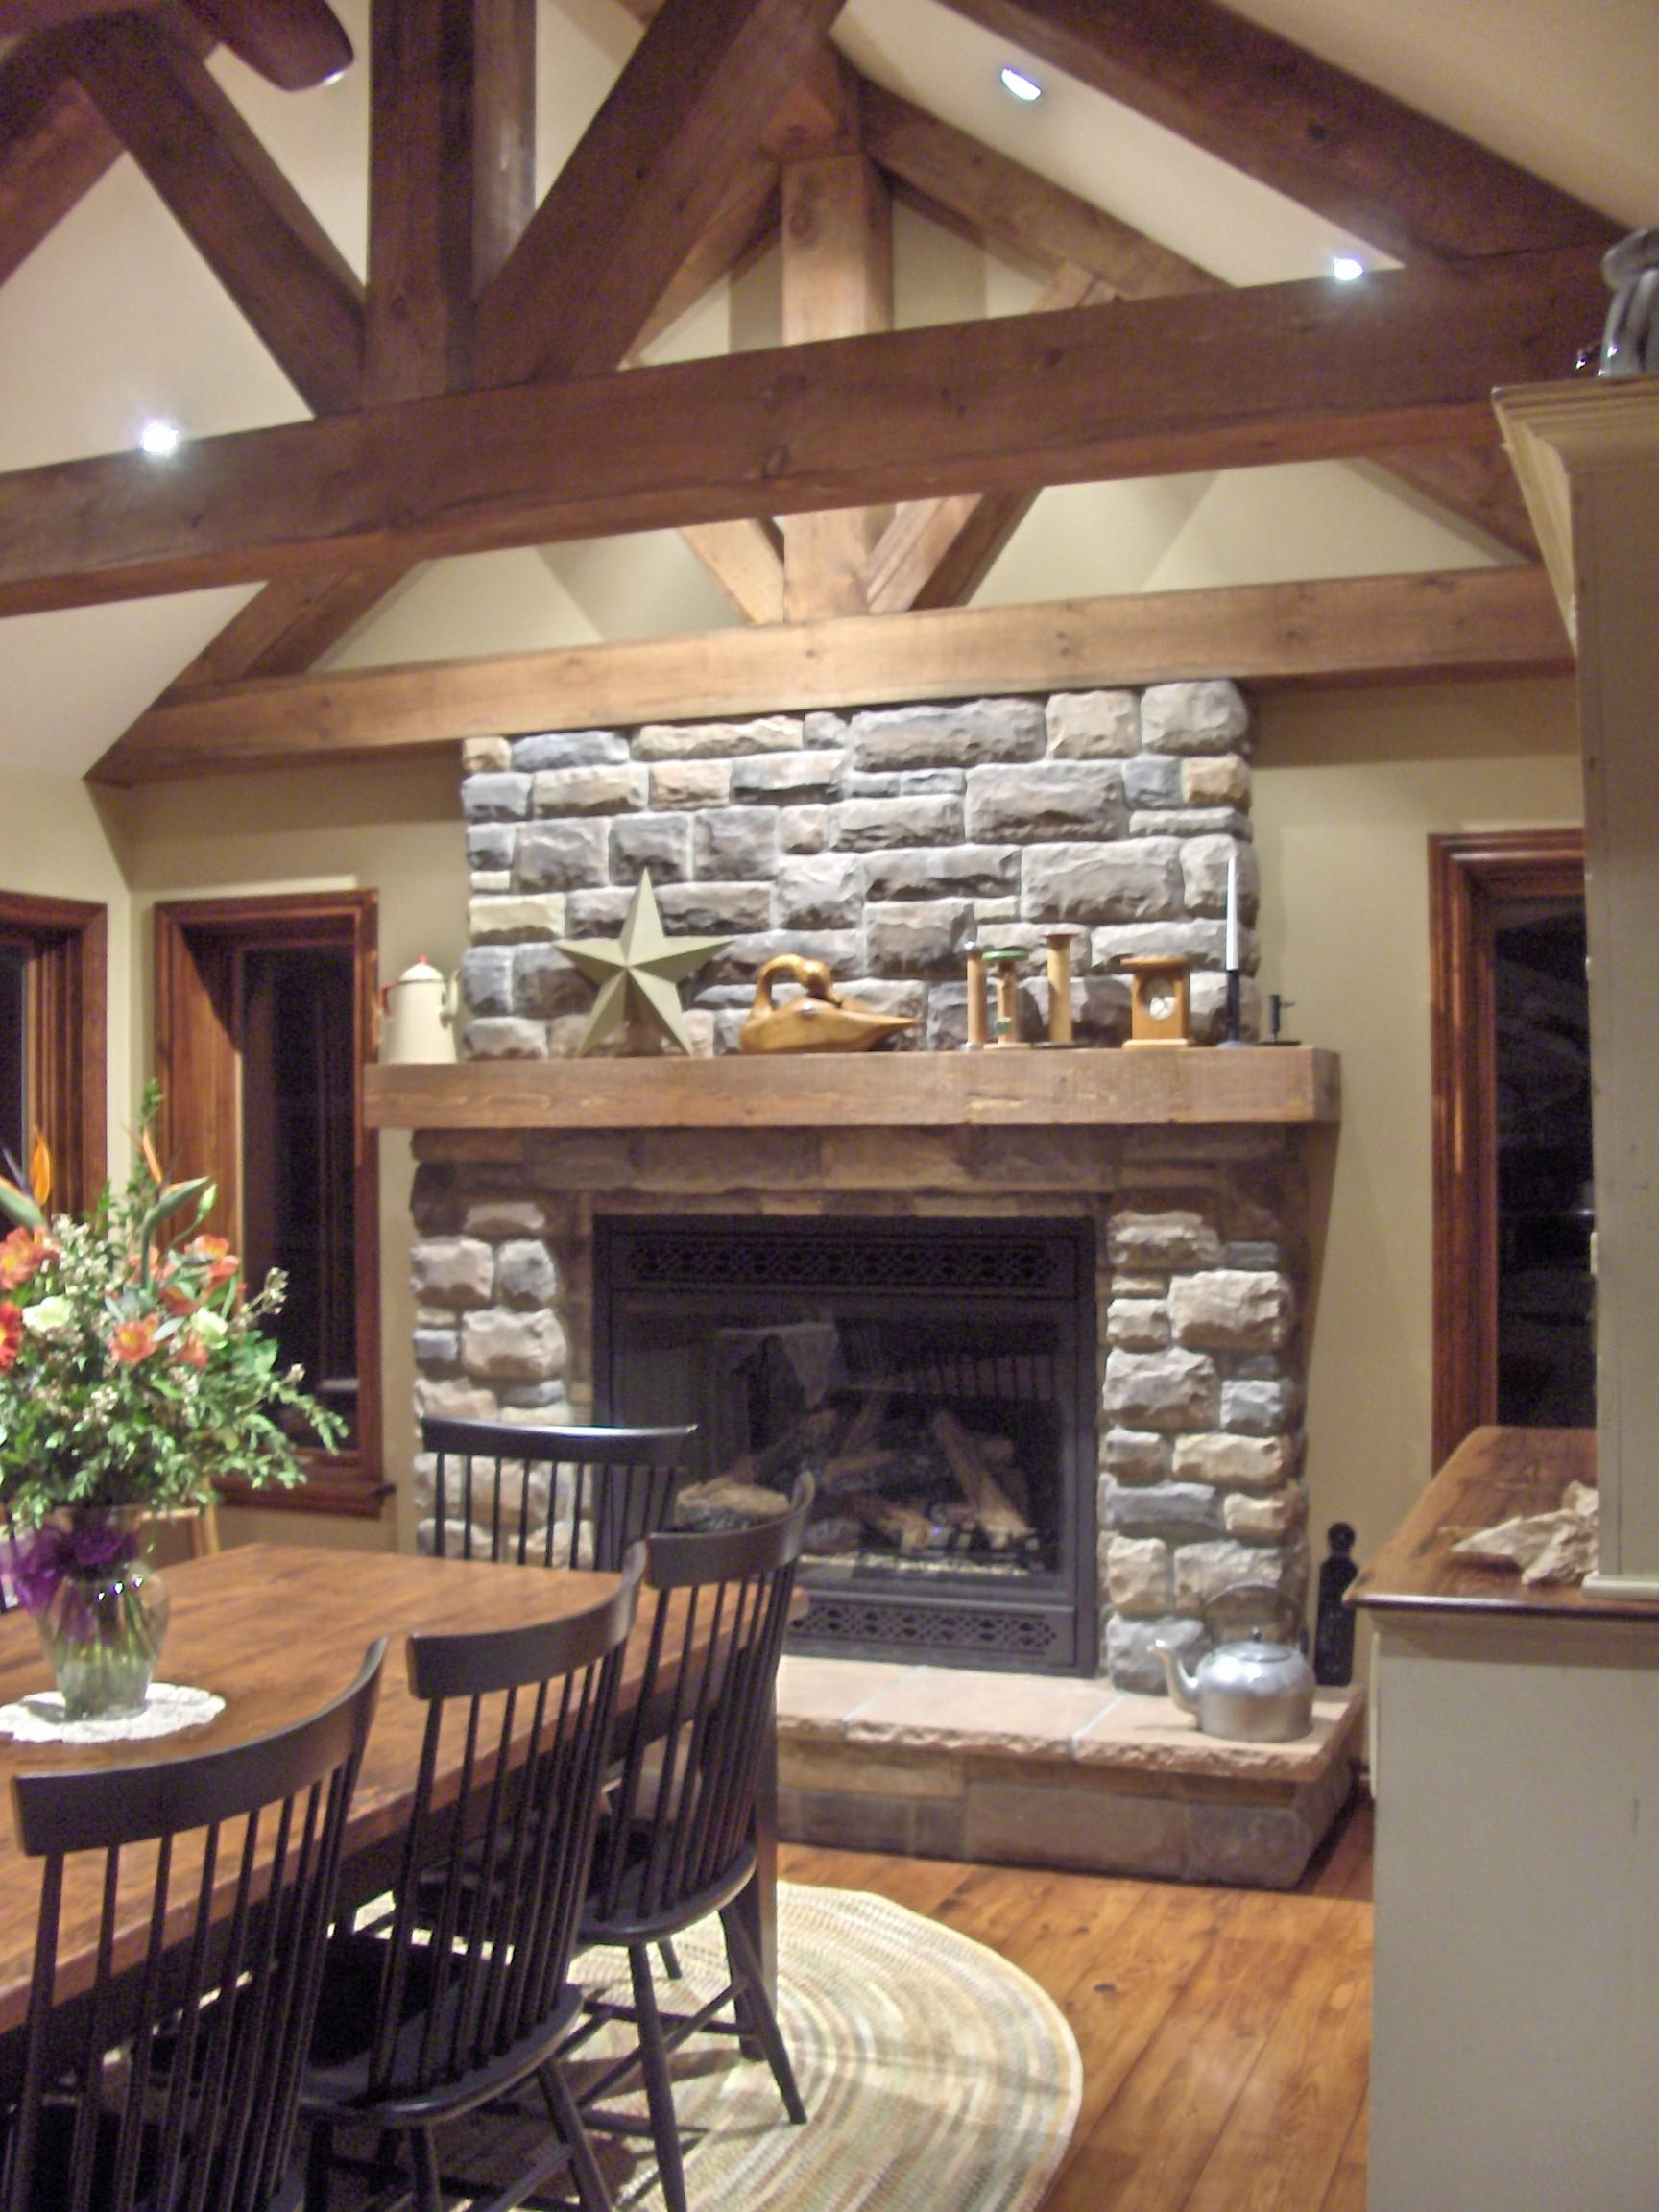 Fabulous Stone Fireplace Design Small Dining Room Ideas